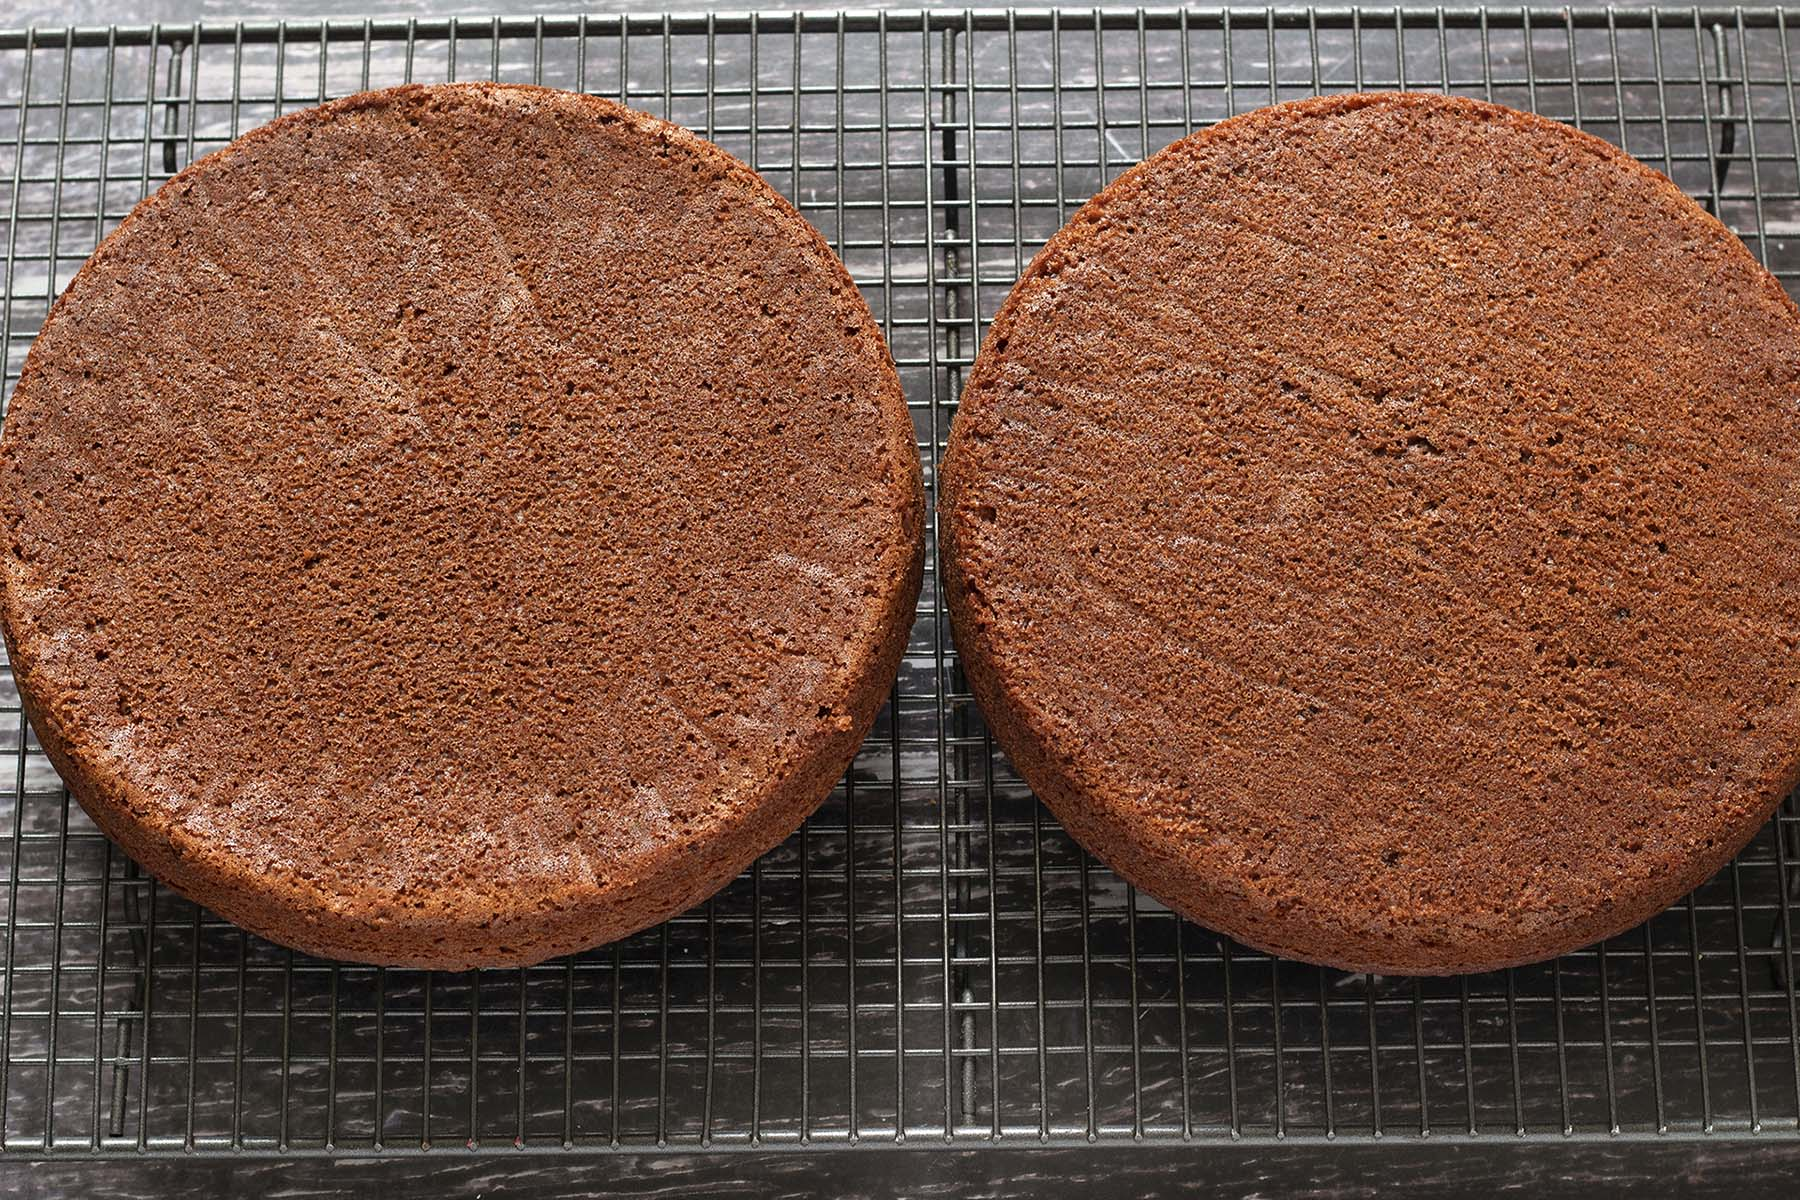 two vegan sandwich cakes on cooling rack